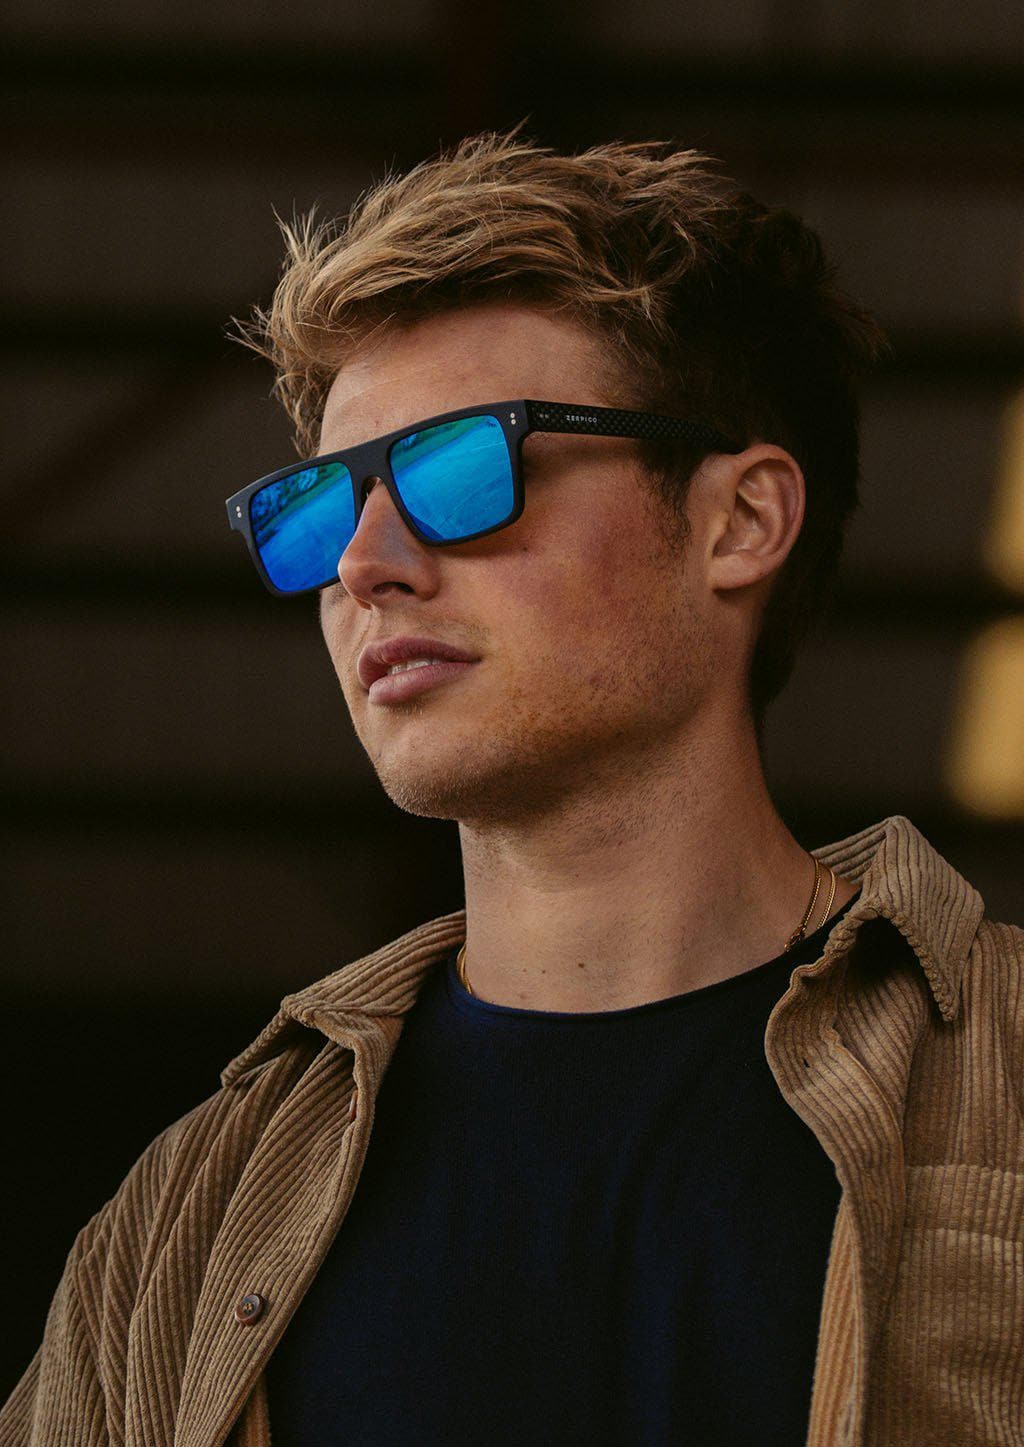 Hybrid - Cubic, carbon fiber and acetate sunglasses of the highest quality. On a model with our blue lenses.